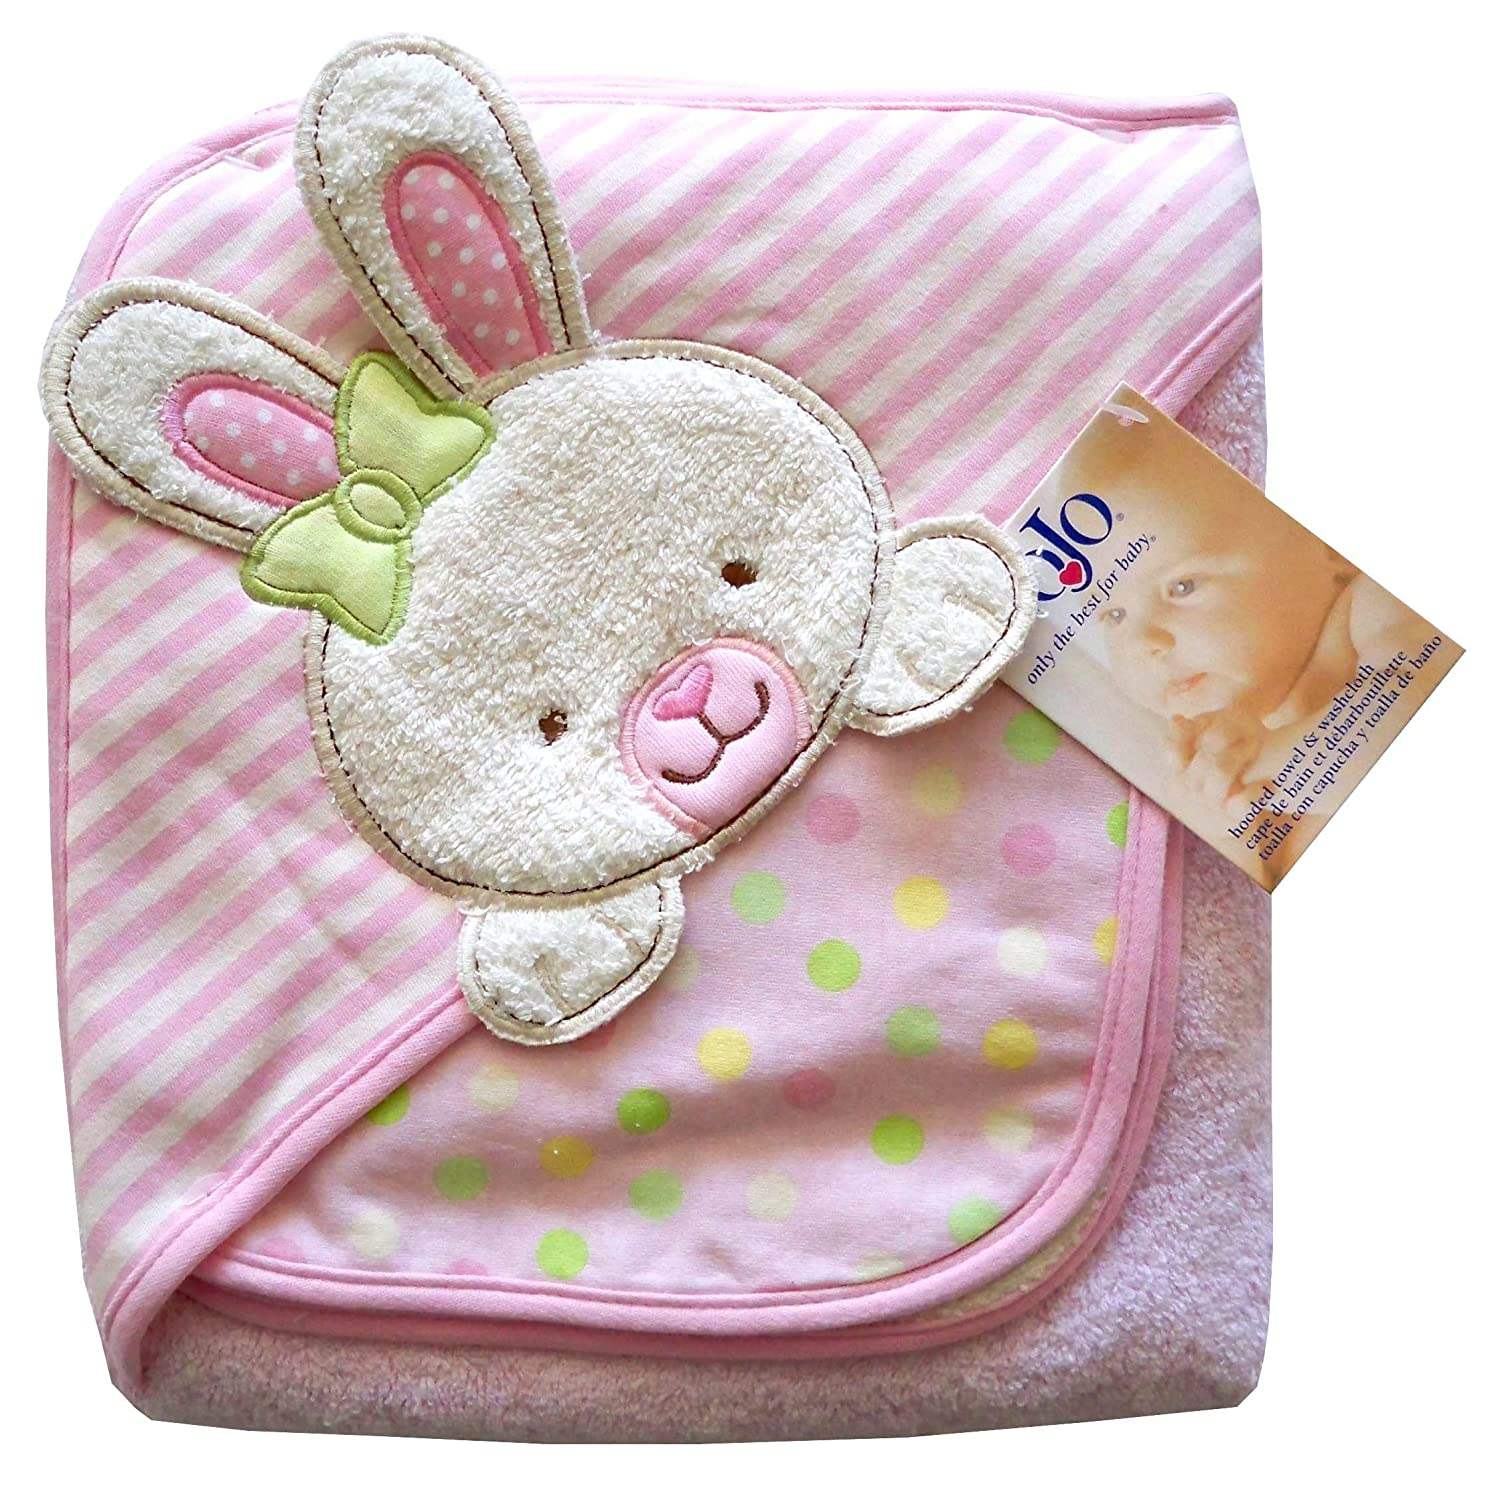 Amazon.com : Nojo Character Bath Collection 3D Character Applique Hooded Towel and Washcloth Set, Bunny (Discontinued by Manufacturer) : Baby Washcloths : ...